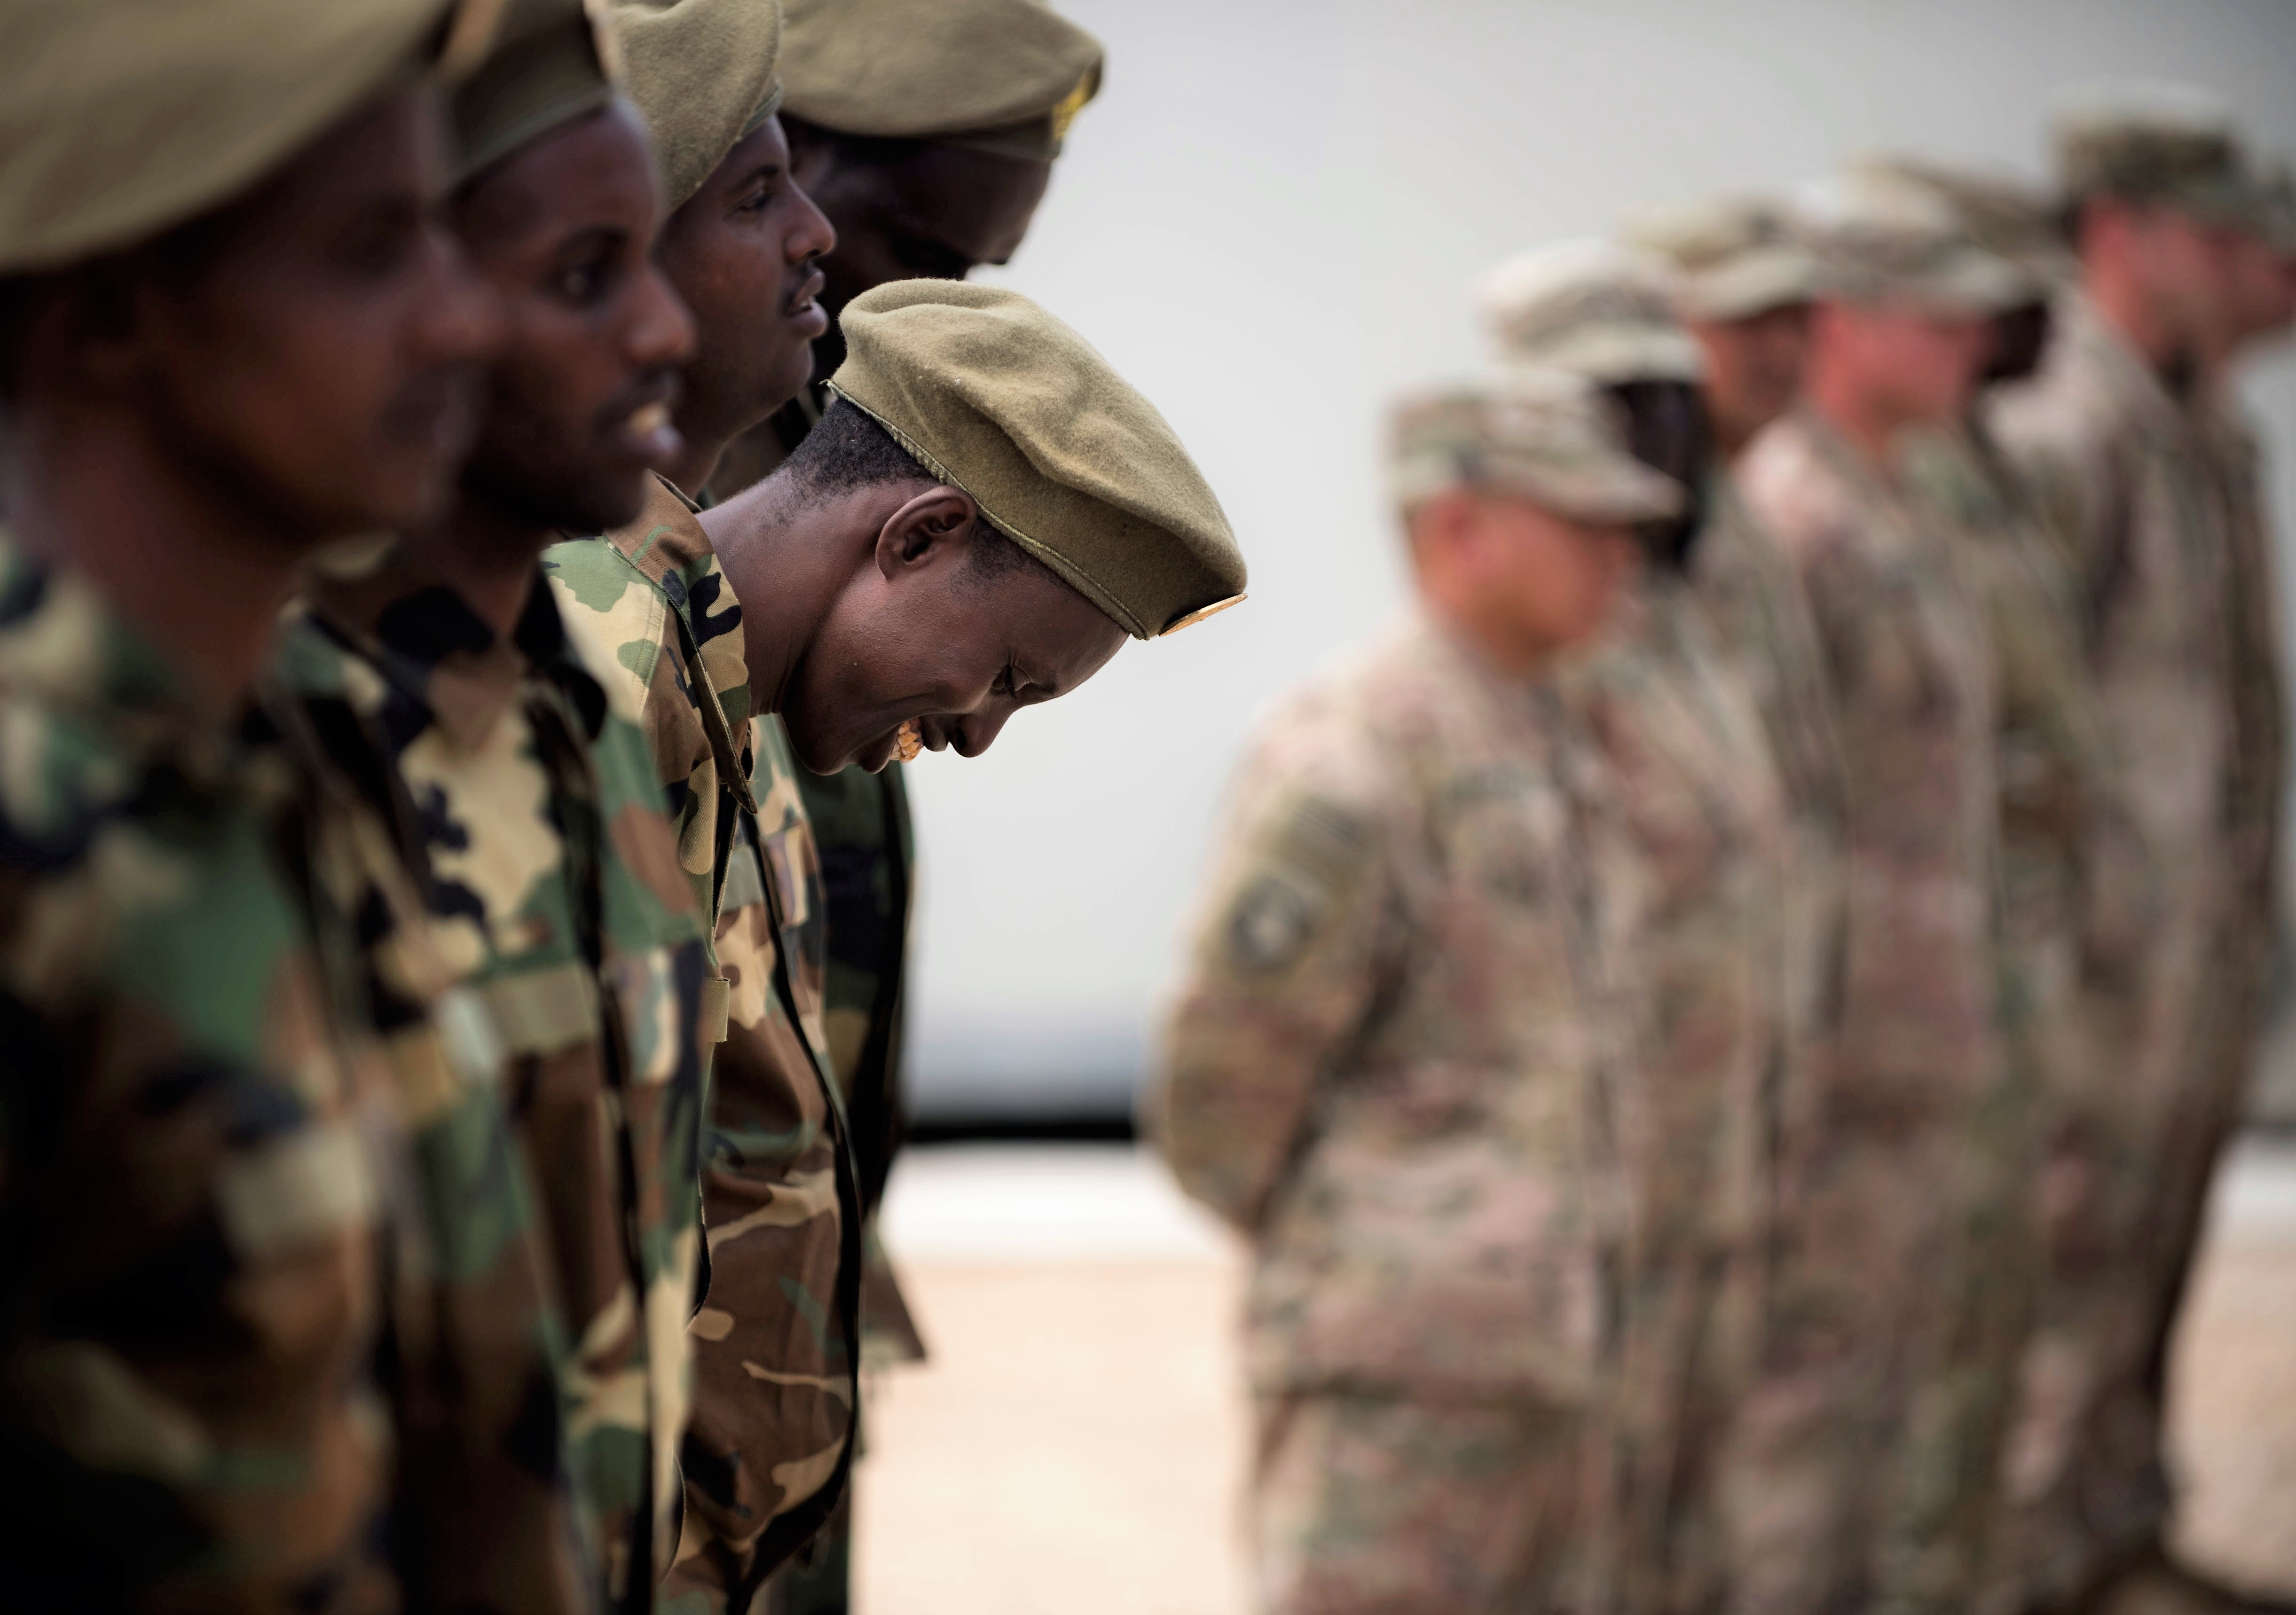 A Somali national army soldier stands in formation awaiting to receive his certificate of completion at a logistics course graduation ceremony.   Soldiers from Somali's special forces DANAB battalion spent 14 weeks training with the U.S. 10th Mountain division on the importance of logistical operation as well as the operation and maintenance of heavy equipment.  (Photo by MC2 (SW/AW) Evan Parker. Released)